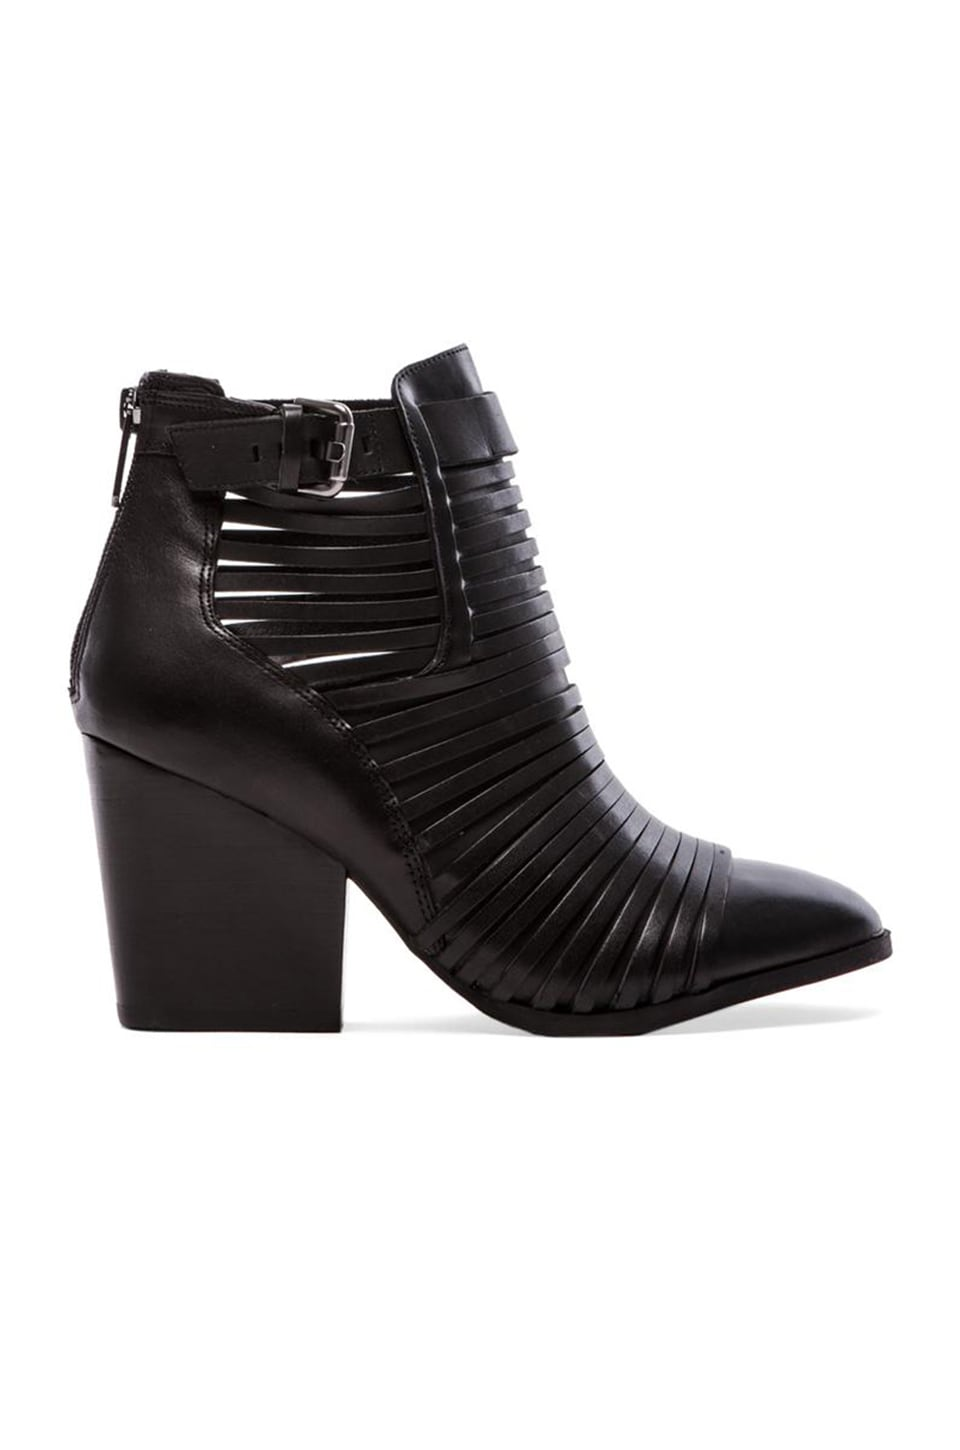 Circus by Sam Edelman Talon Bootie in Black